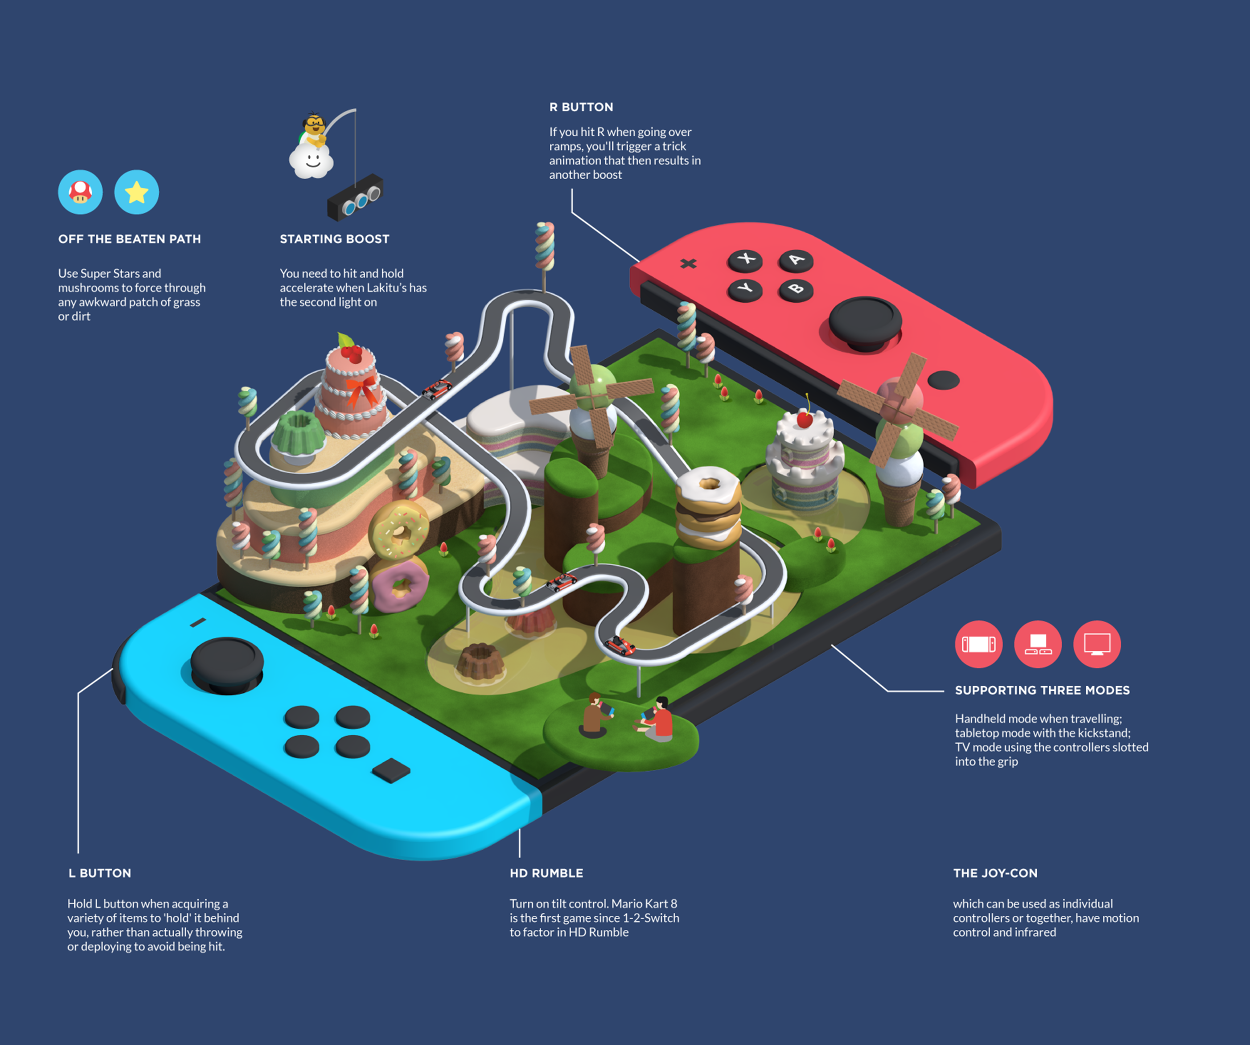 switch fun facts